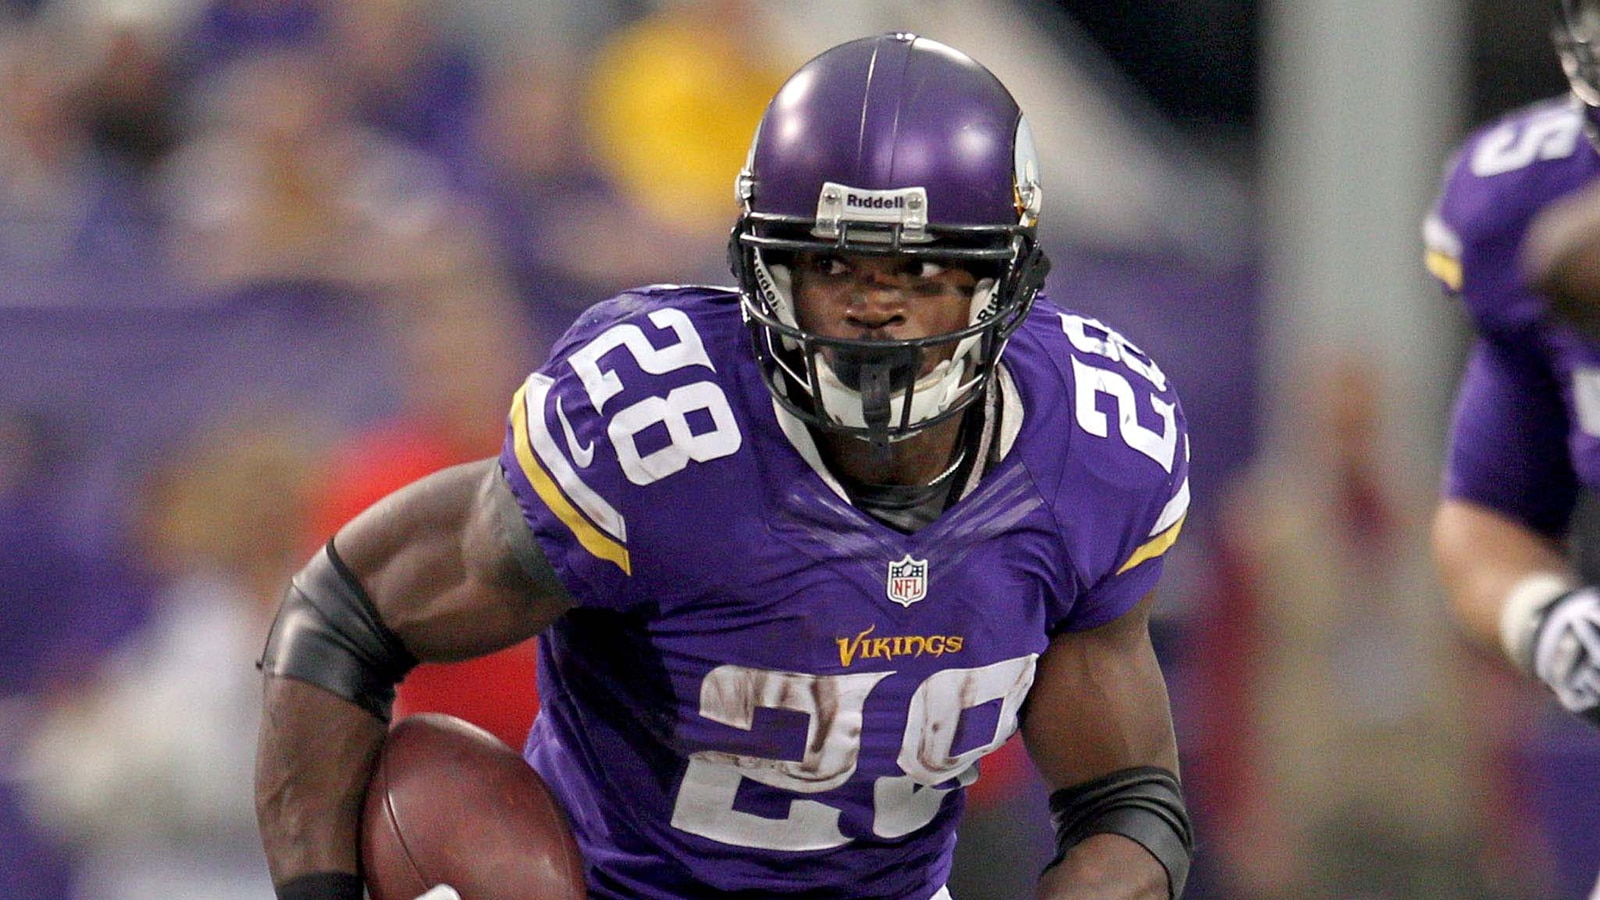 Do fans around the NFL feel Peterson should be allowed back? Courtesy - foxsports.com